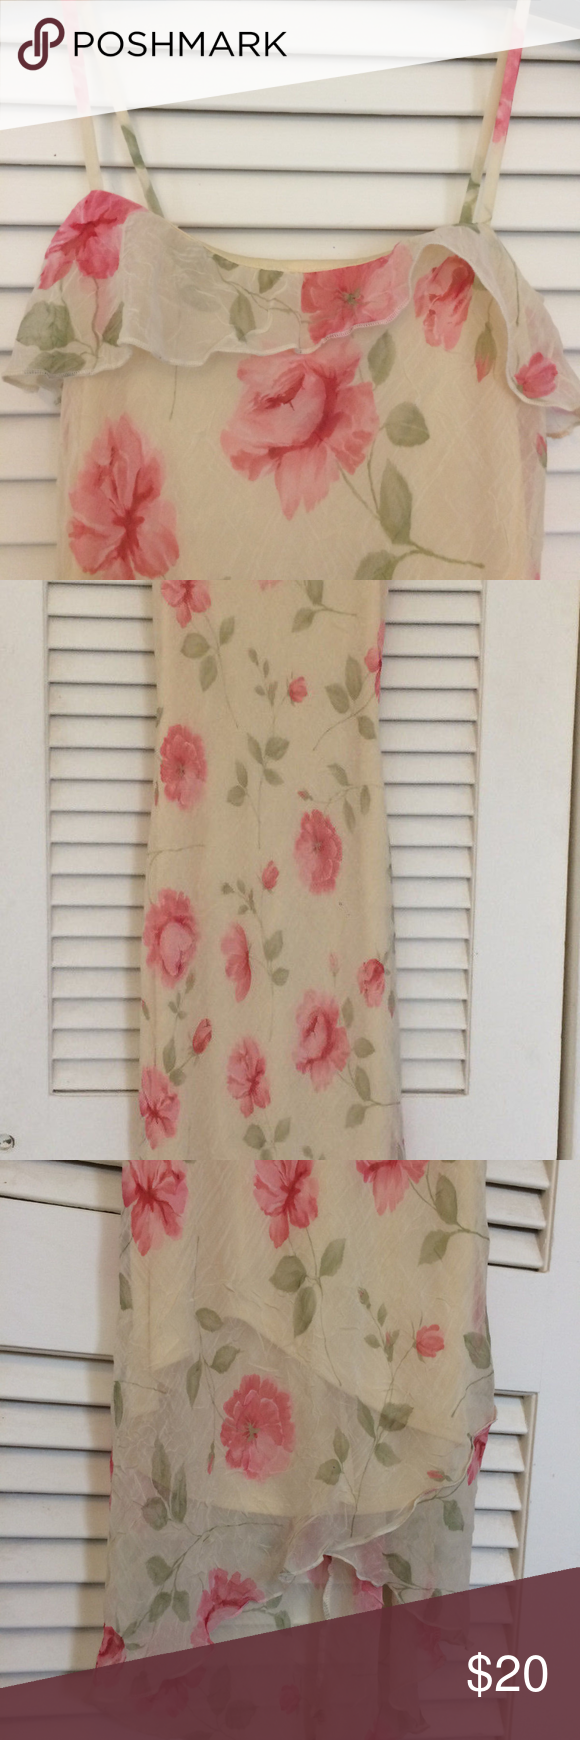 "Gorgeous Floral Dress! Size 3 This is an absolutely beautiful, lightweight, flowy dress!  Armpit to armpit: 14"" Waist: approx. 24"" Length down front: approx. 38"" Length down back: approx. 45"" Byer Too Dresses"